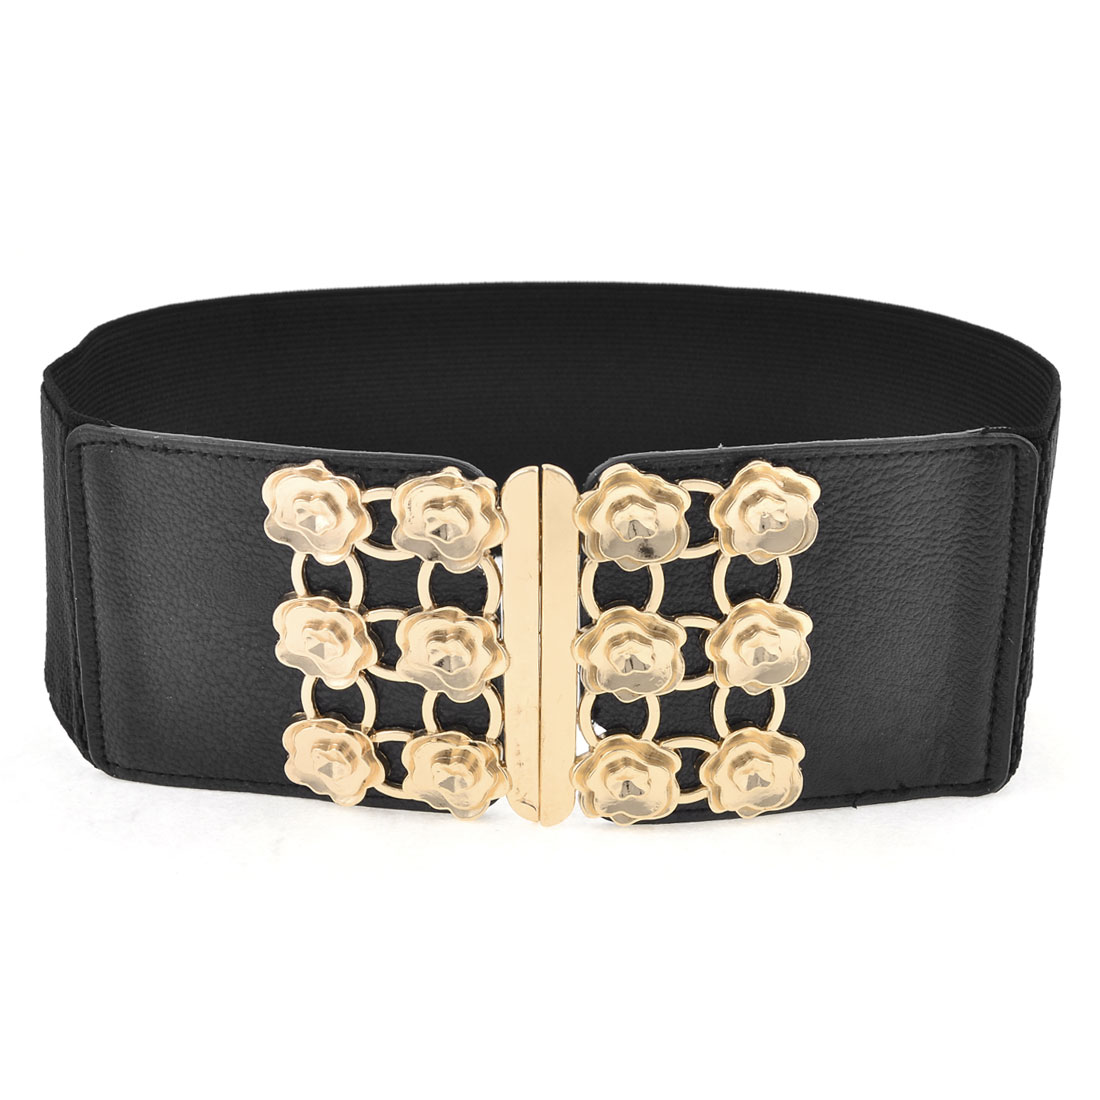 Lady Black Gold Tone Interlocking Buckle Rose Flowers Accent Stretchy Wide Waist Belt